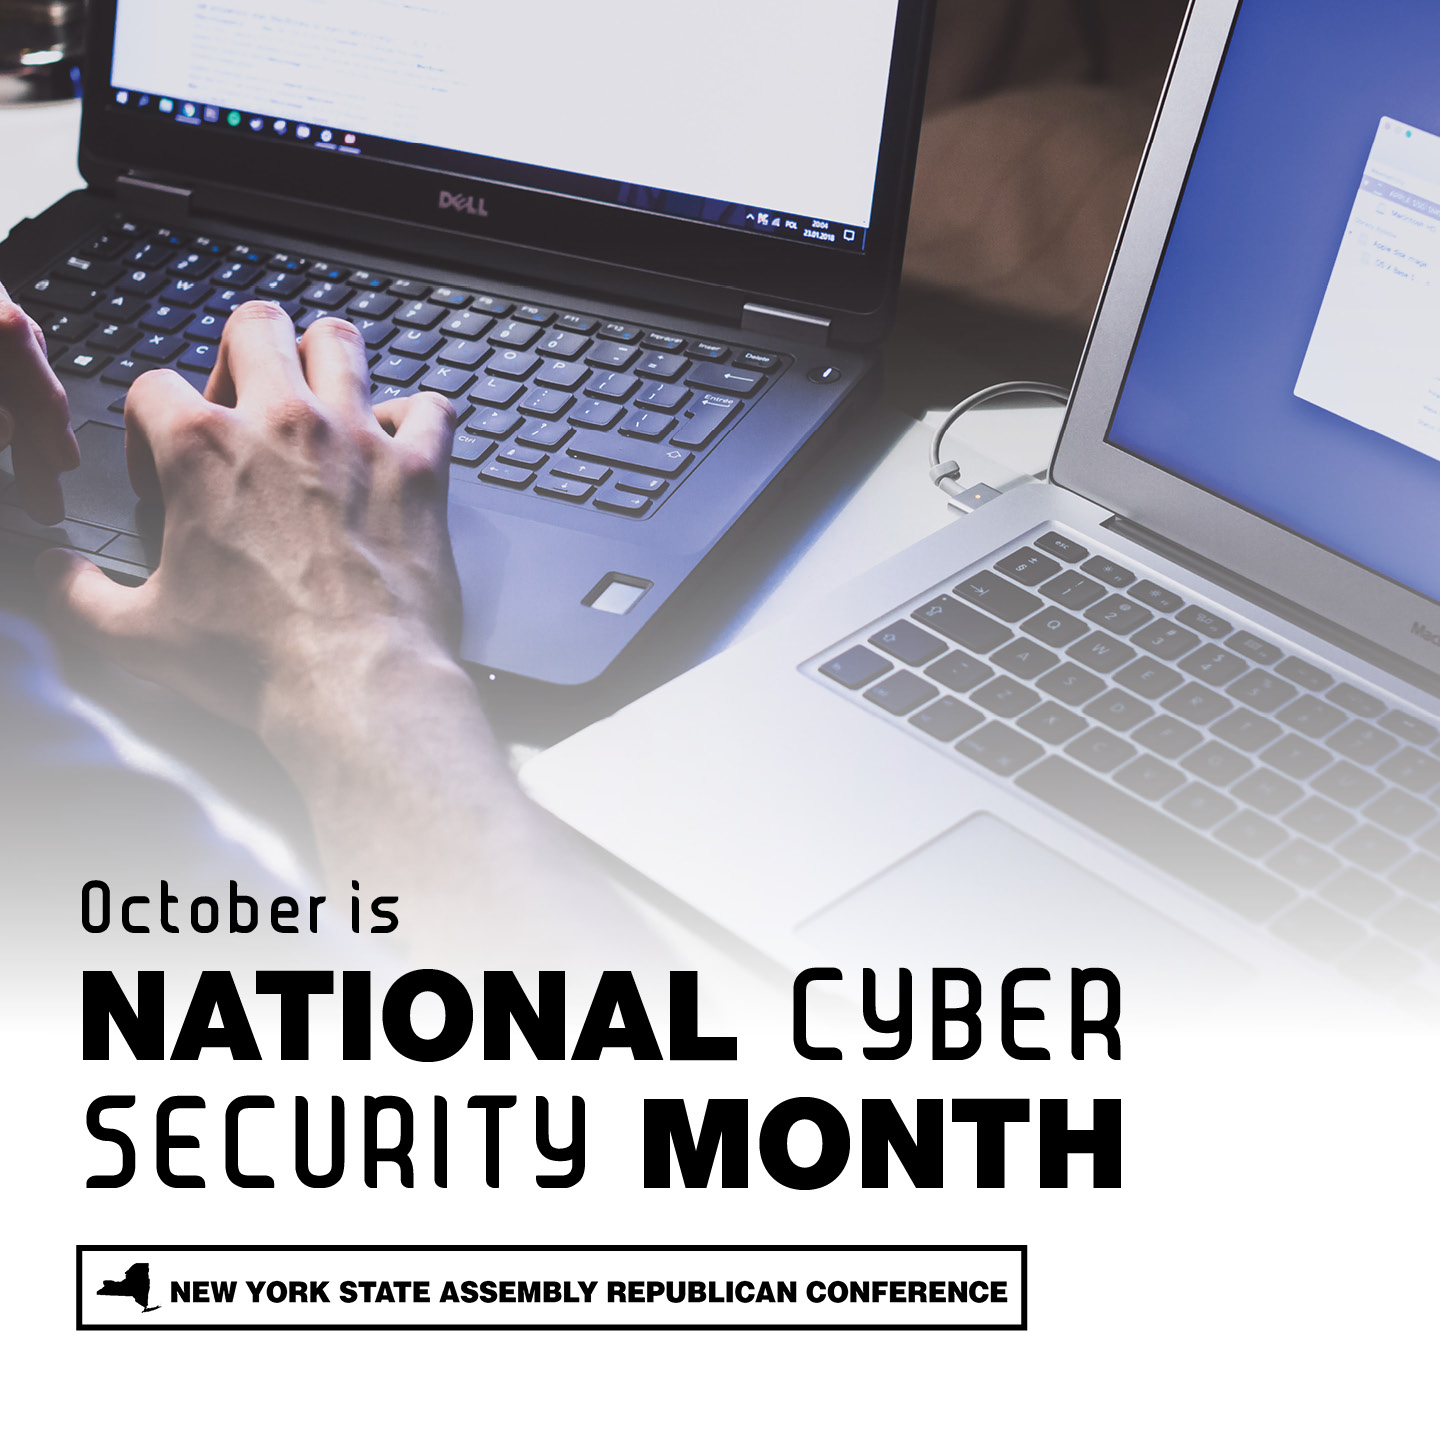 Cyber_Security_Month_October.jpg